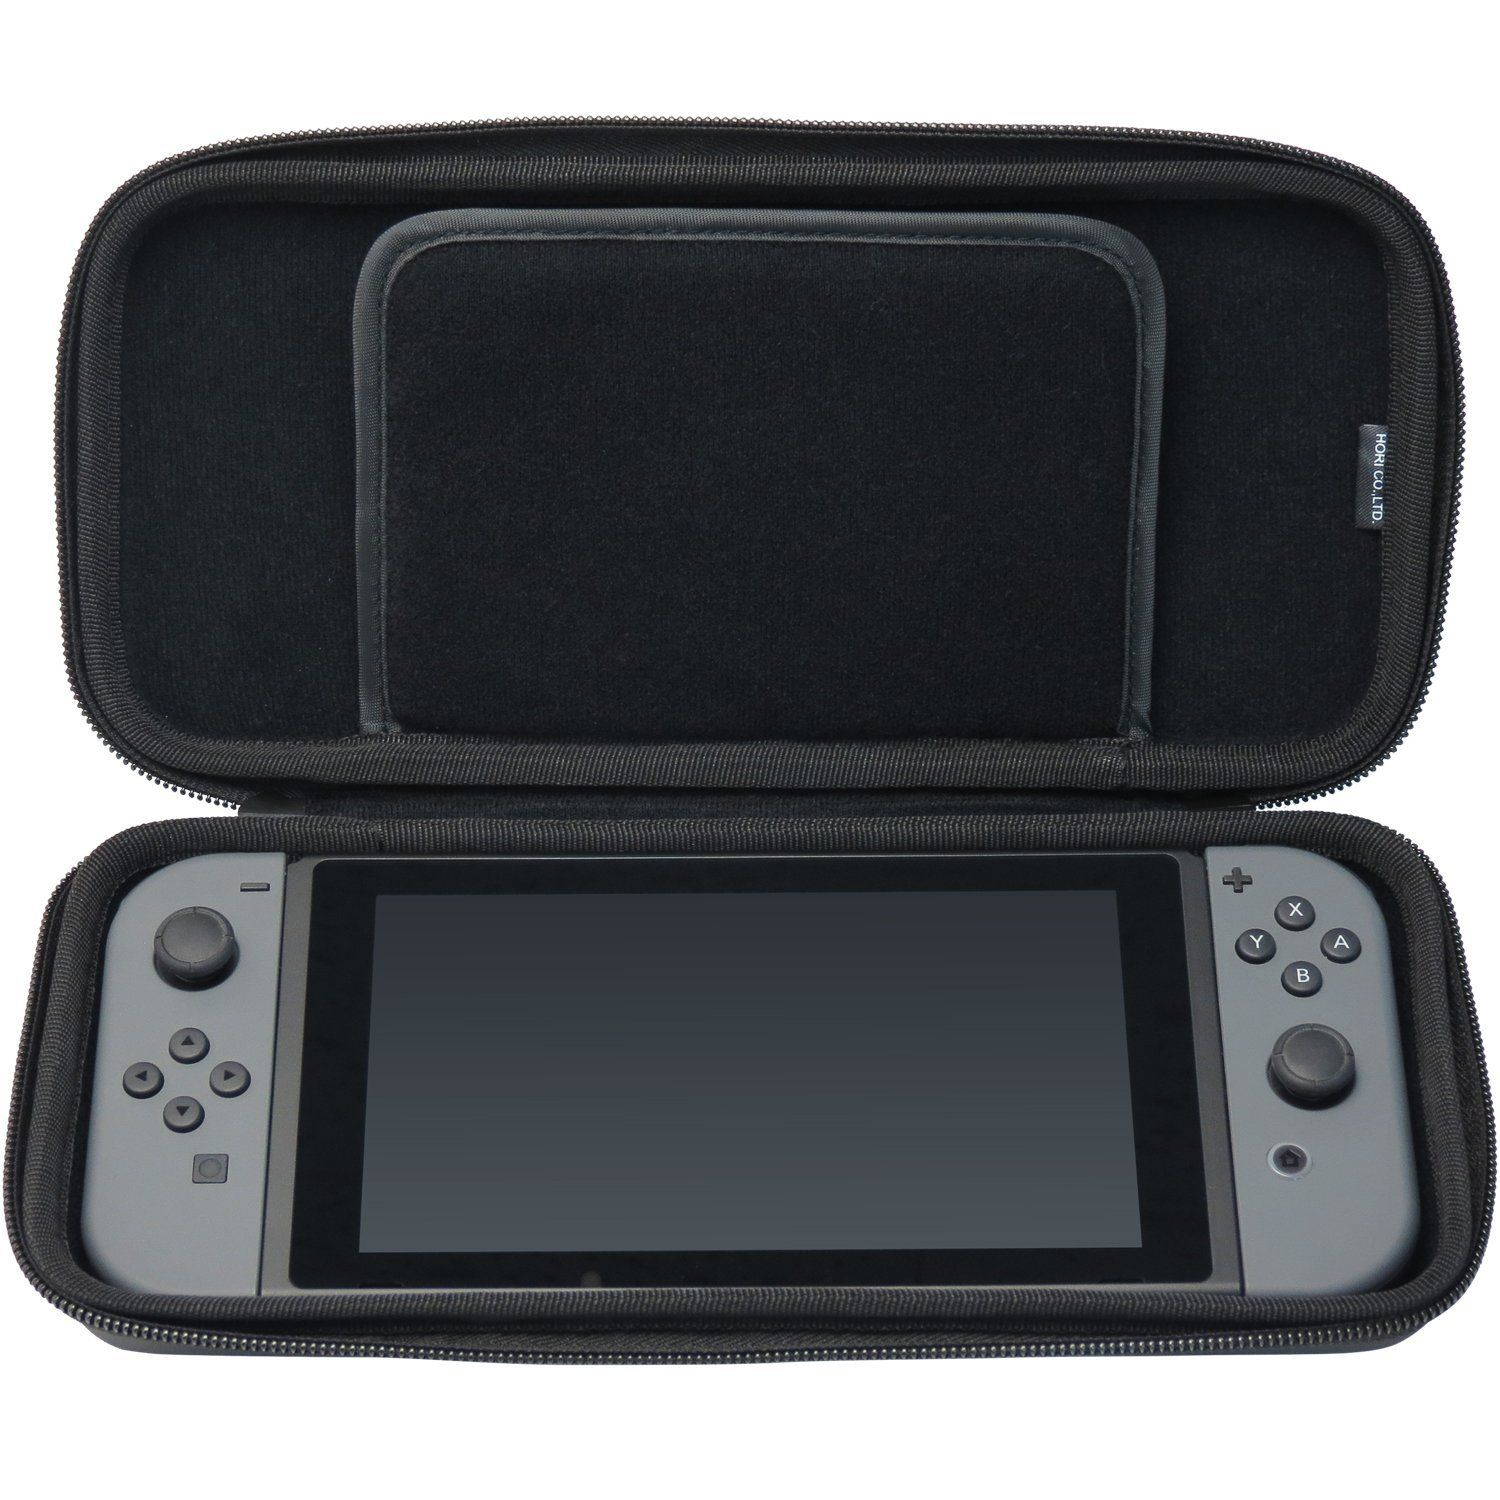 Top 5 Best Nintendo Switch Accessories Pinterest Screen Tempered Glass For New 3ds Xl Ll Hori Is Awesome Nintendoswitch